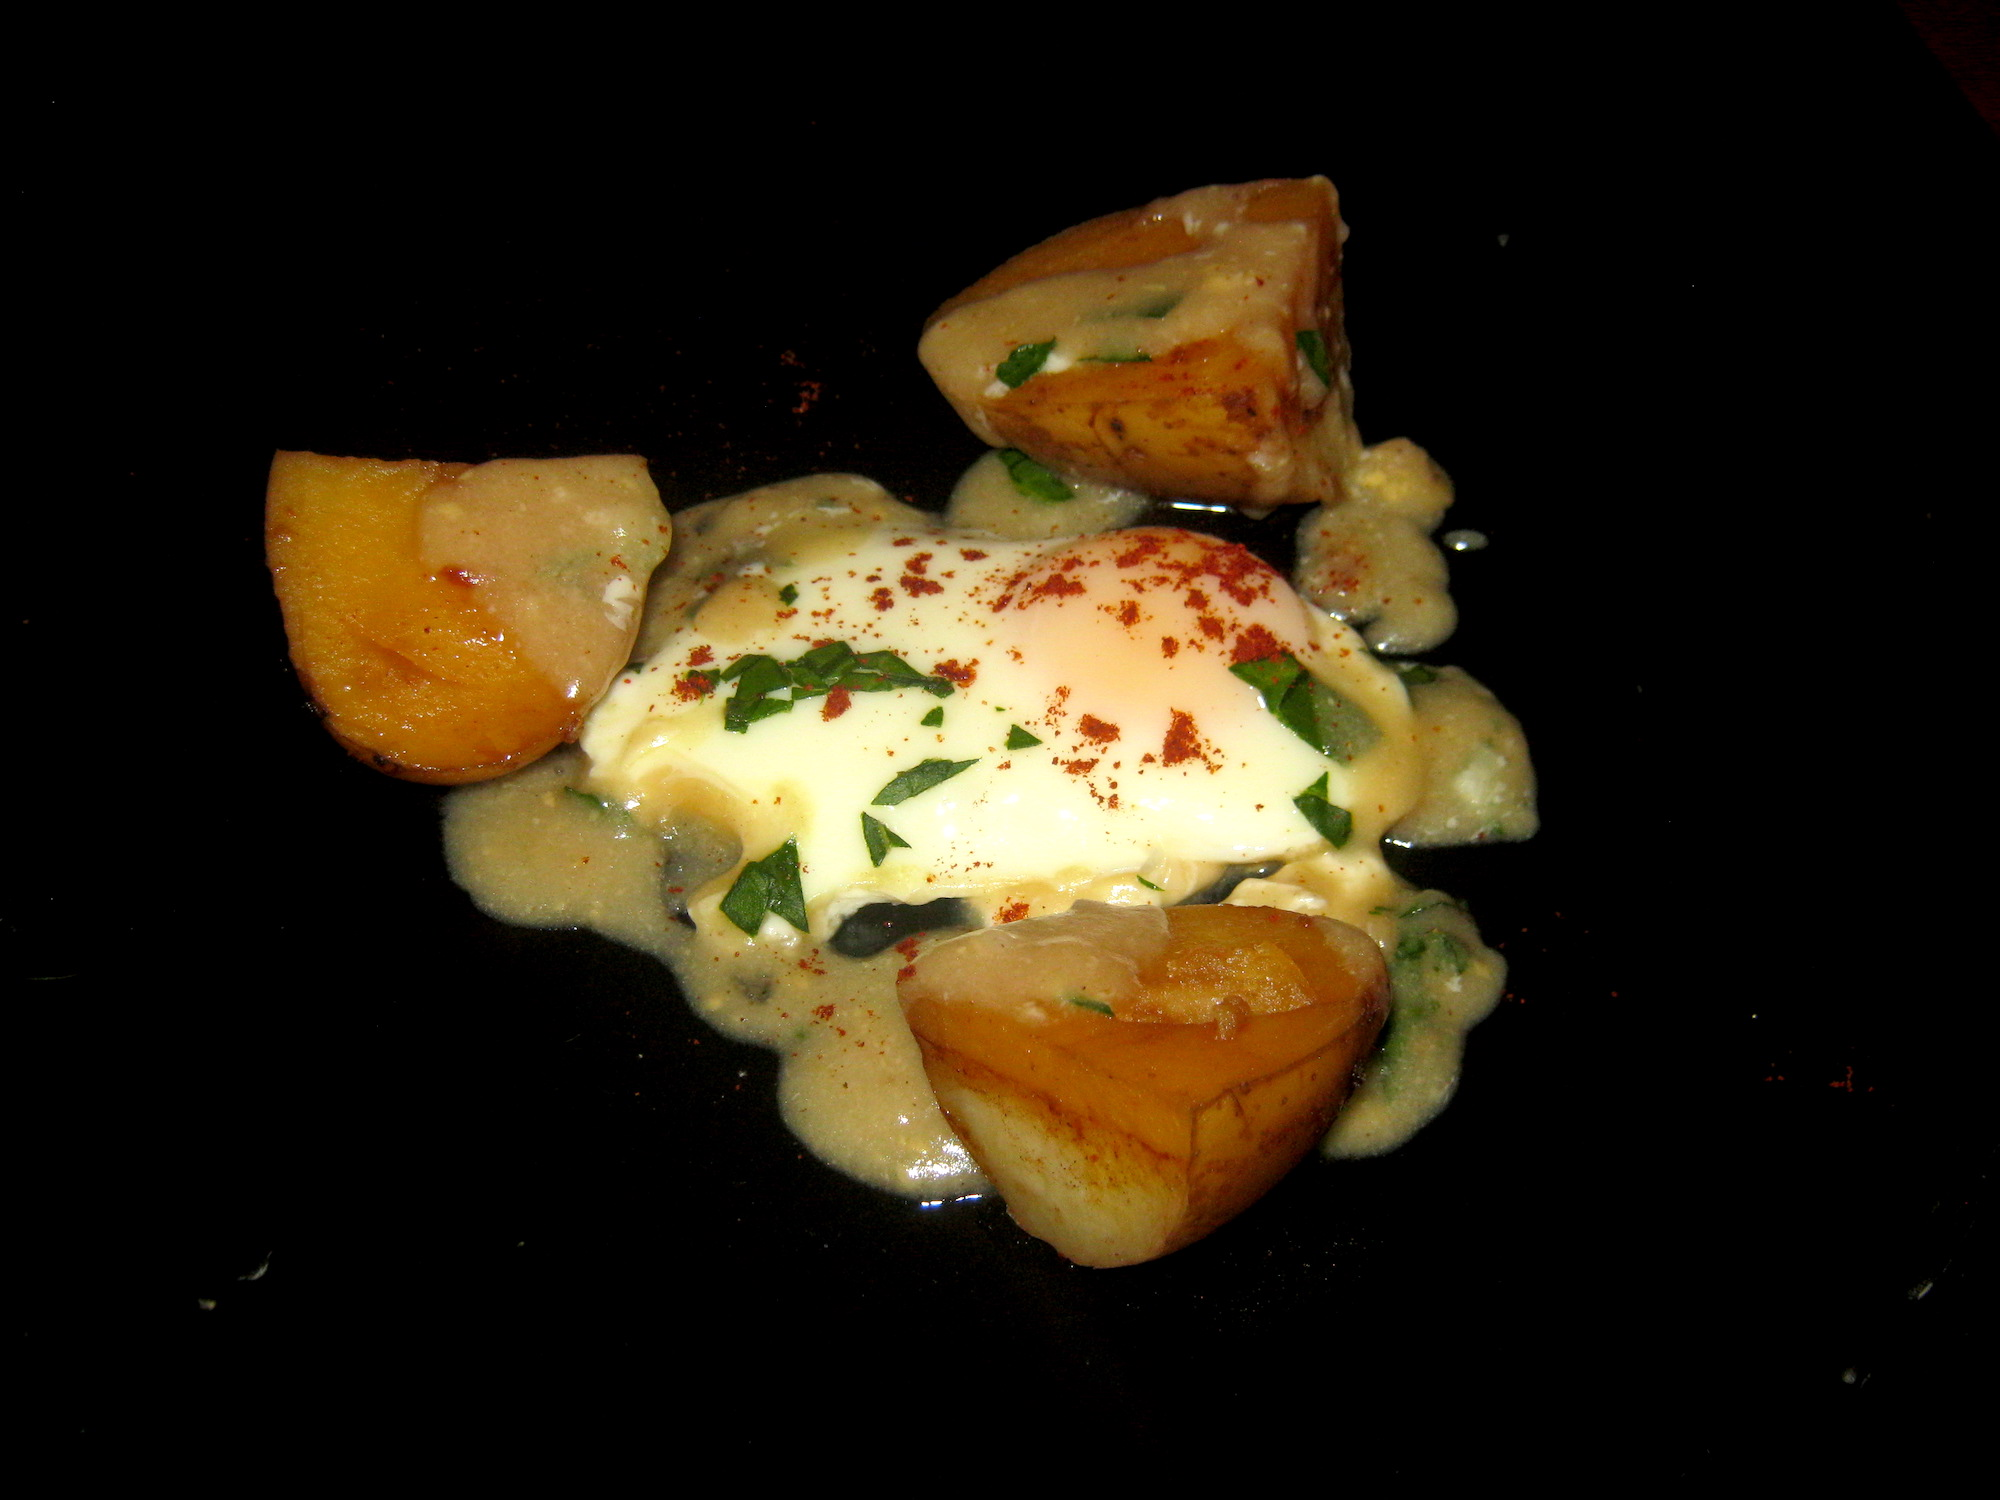 Sour eggs with fried potatoes and gravy on a plate